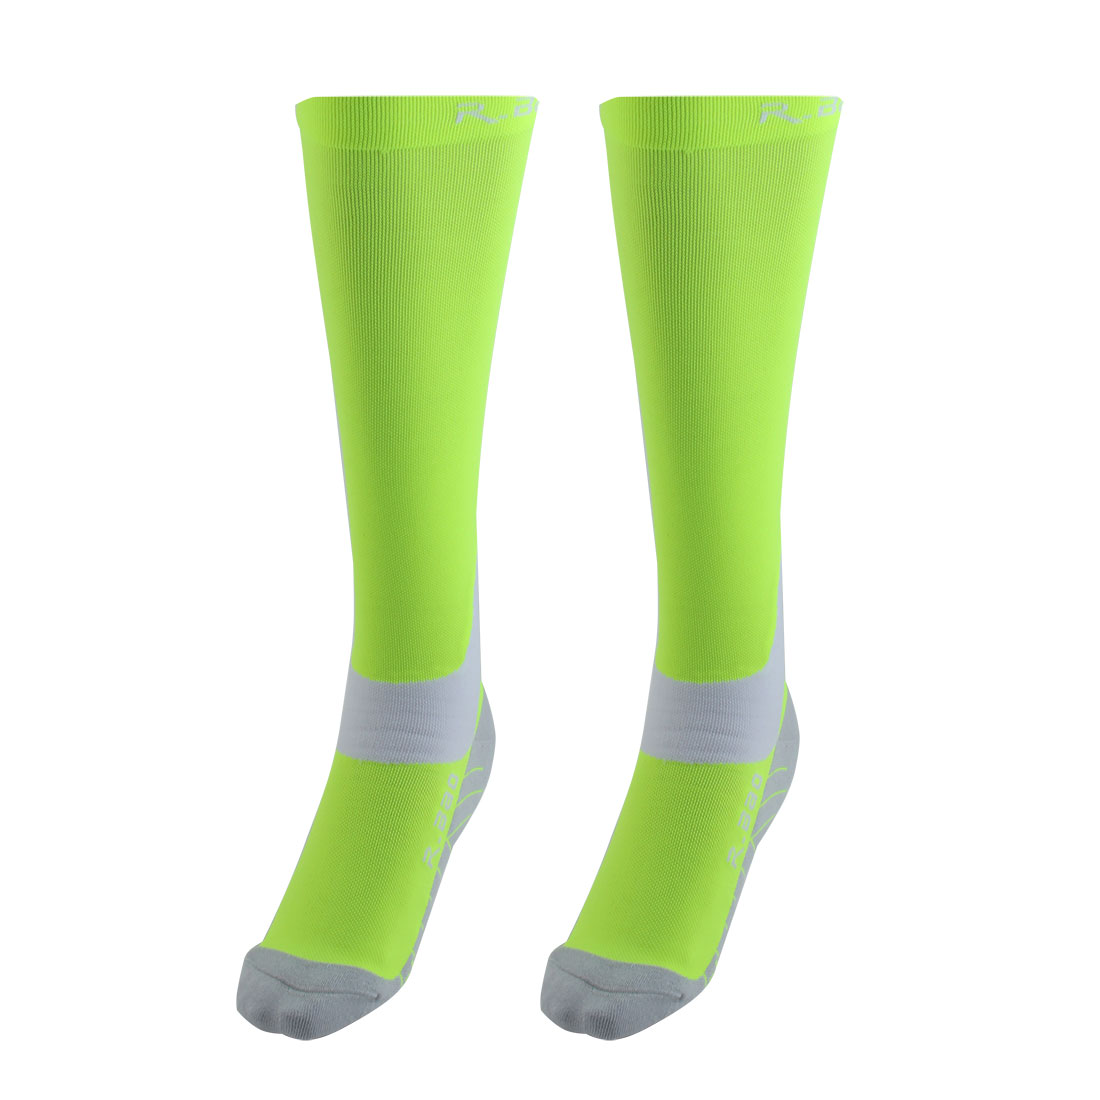 R-BAO Authorized Bicycle Running Mountain Bike Cotton Blend Breathable Sports Cycling Socks Fluorescent Green M